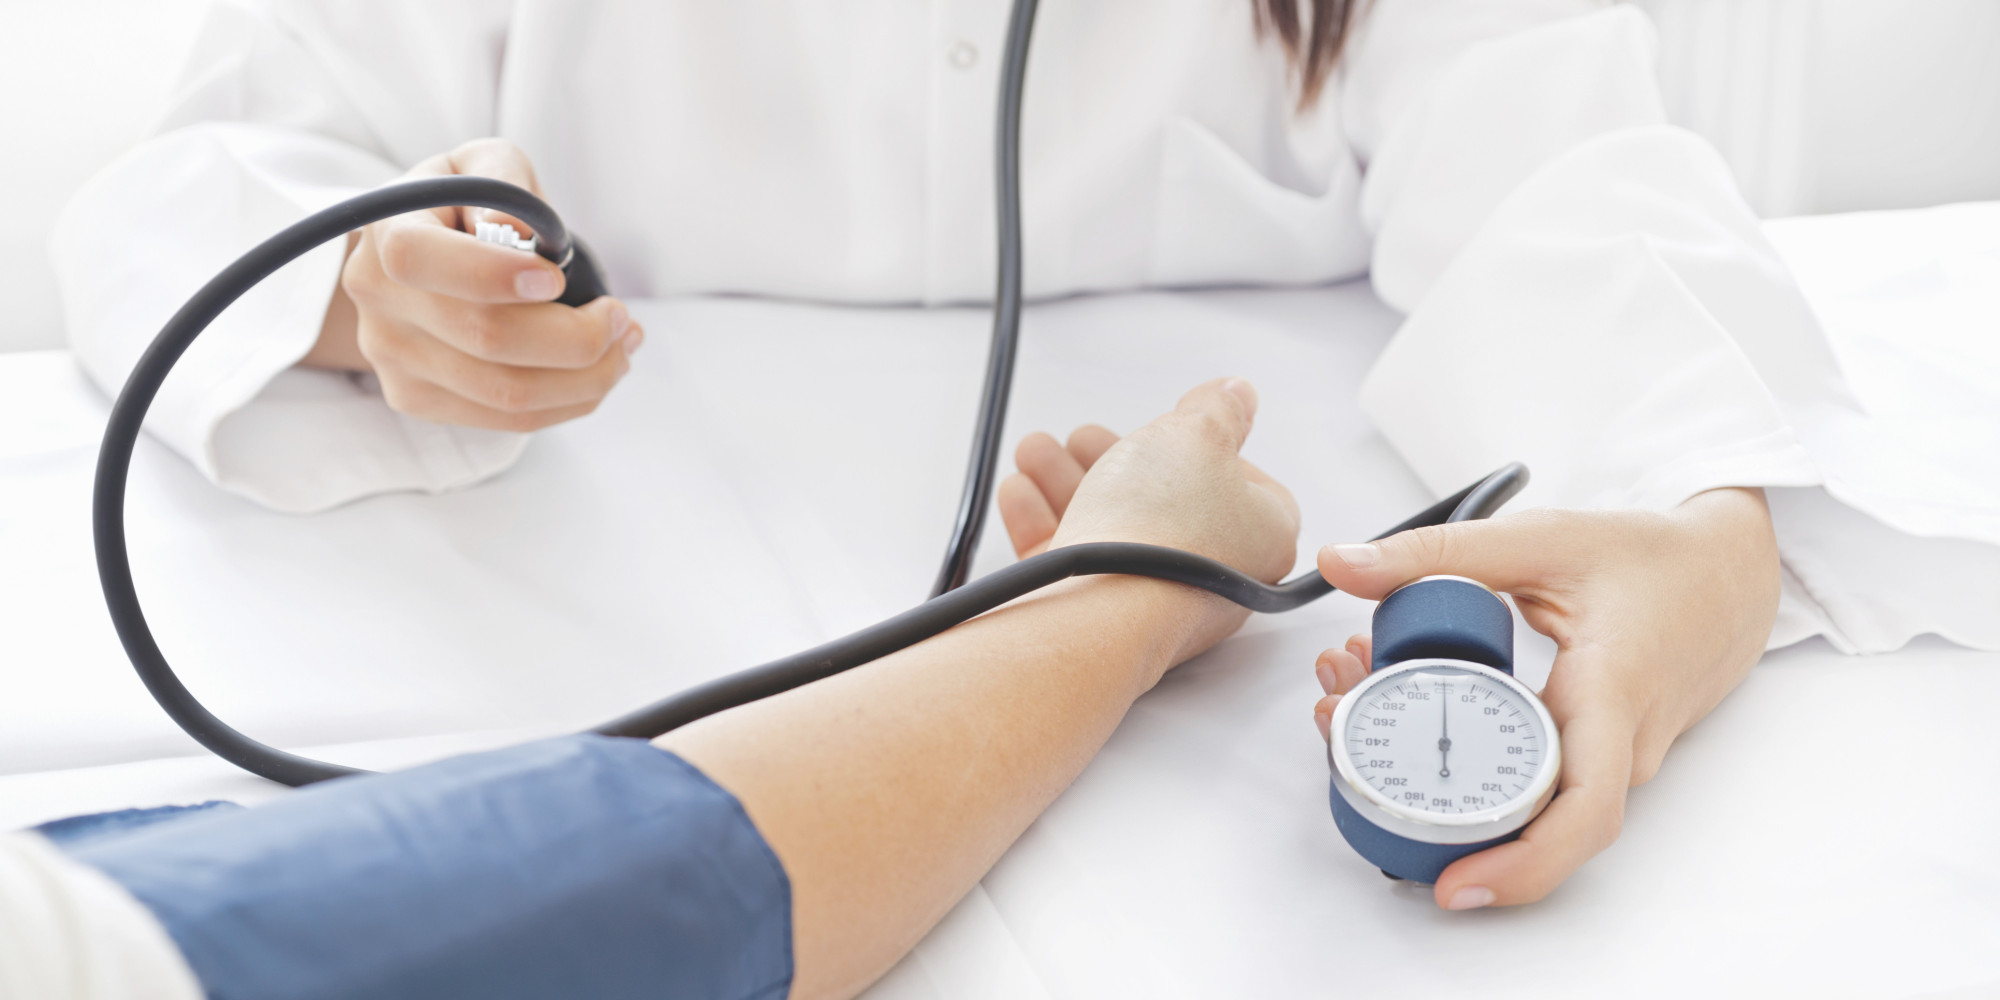 nursing essay on blood pressure Hypertension is diagnosed by having a blood pressure of 140/90 or above, this  may sound like a simple diagnosis but high blood pressure is a very serious.